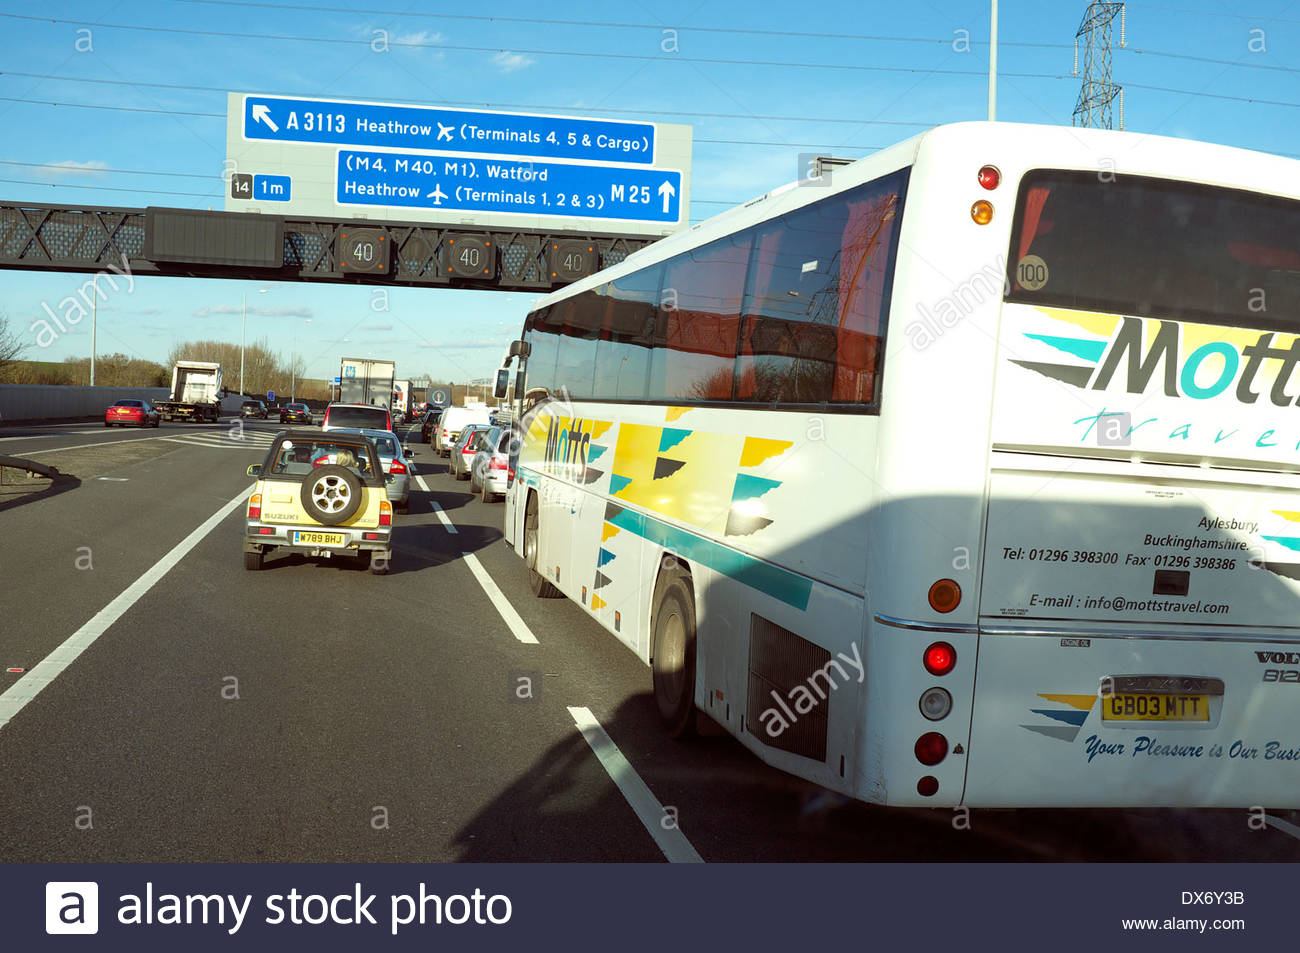 Traffic congestion on the western side of the M25 motorway, near Heathrow, UK. - Stock Image